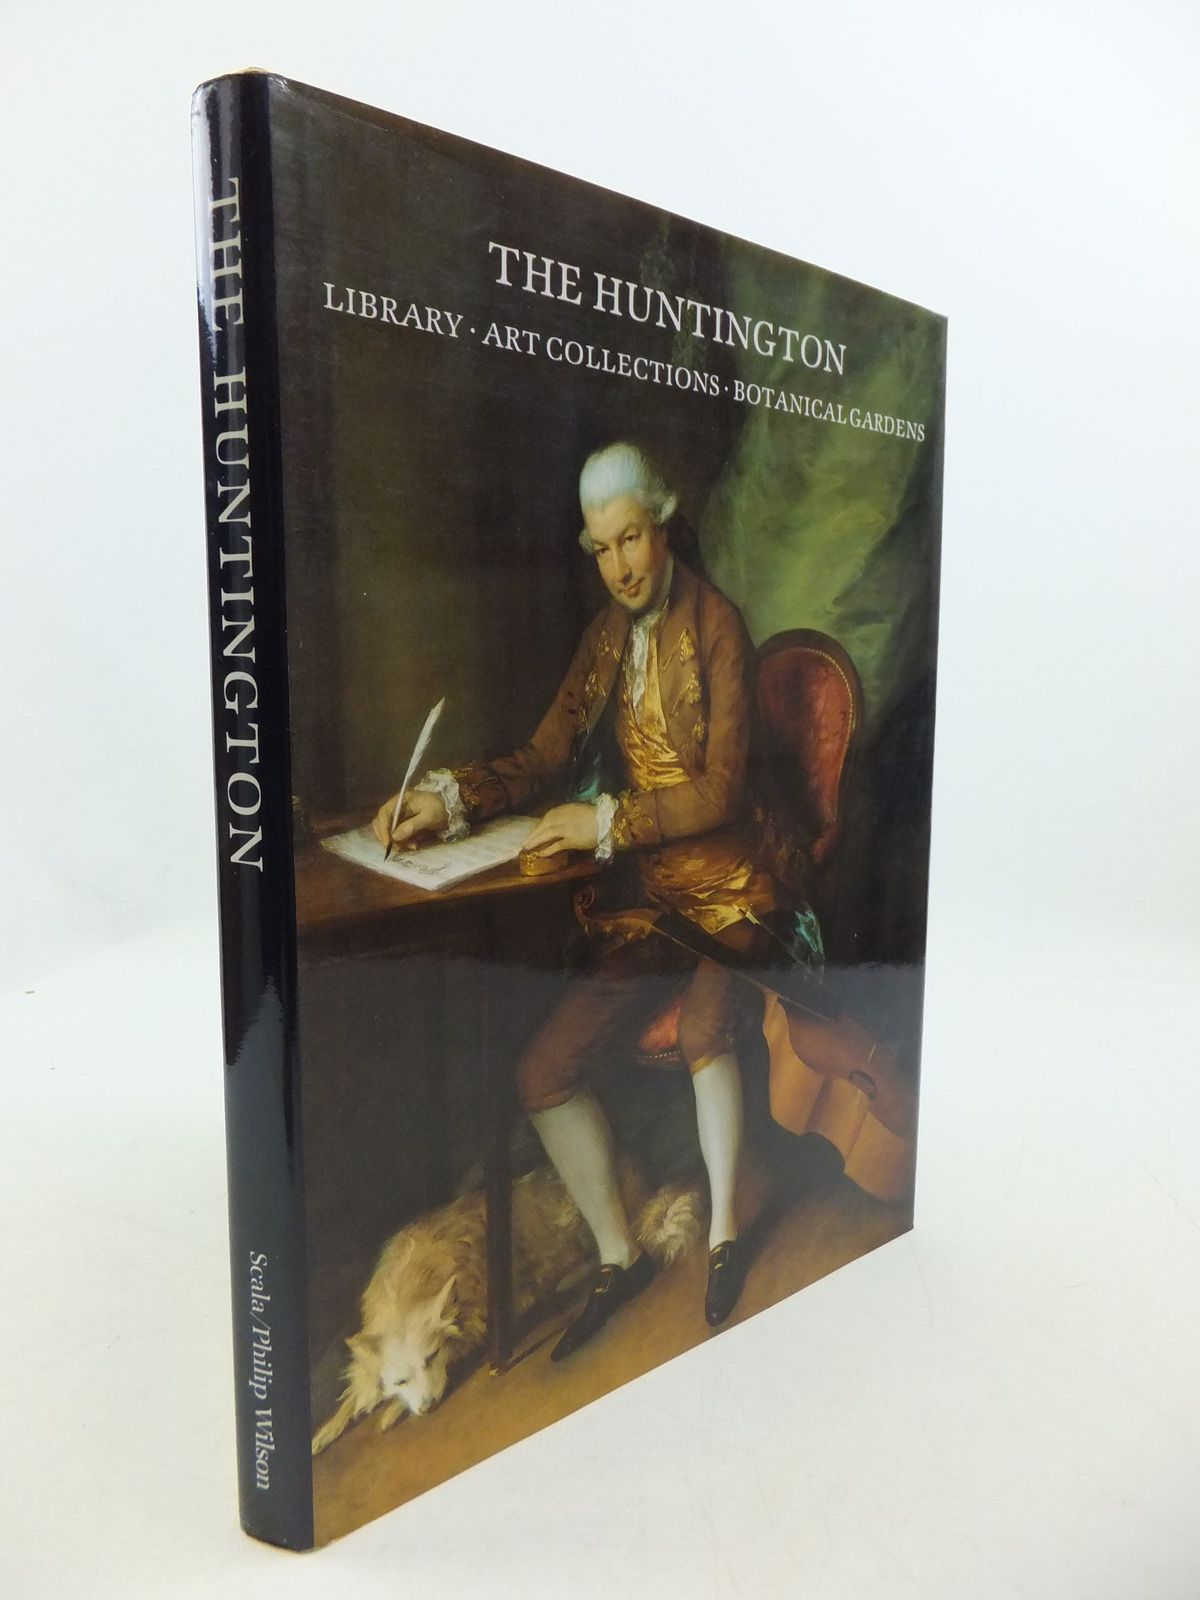 Photo of THE HUNTINGTON LIBRARY, ART COLLECTIONS, BOTANICAL GARDENS written by Pomeroy, Elizabeth published by Scalo, Philip Wilson (STOCK CODE: 2111088)  for sale by Stella & Rose's Books